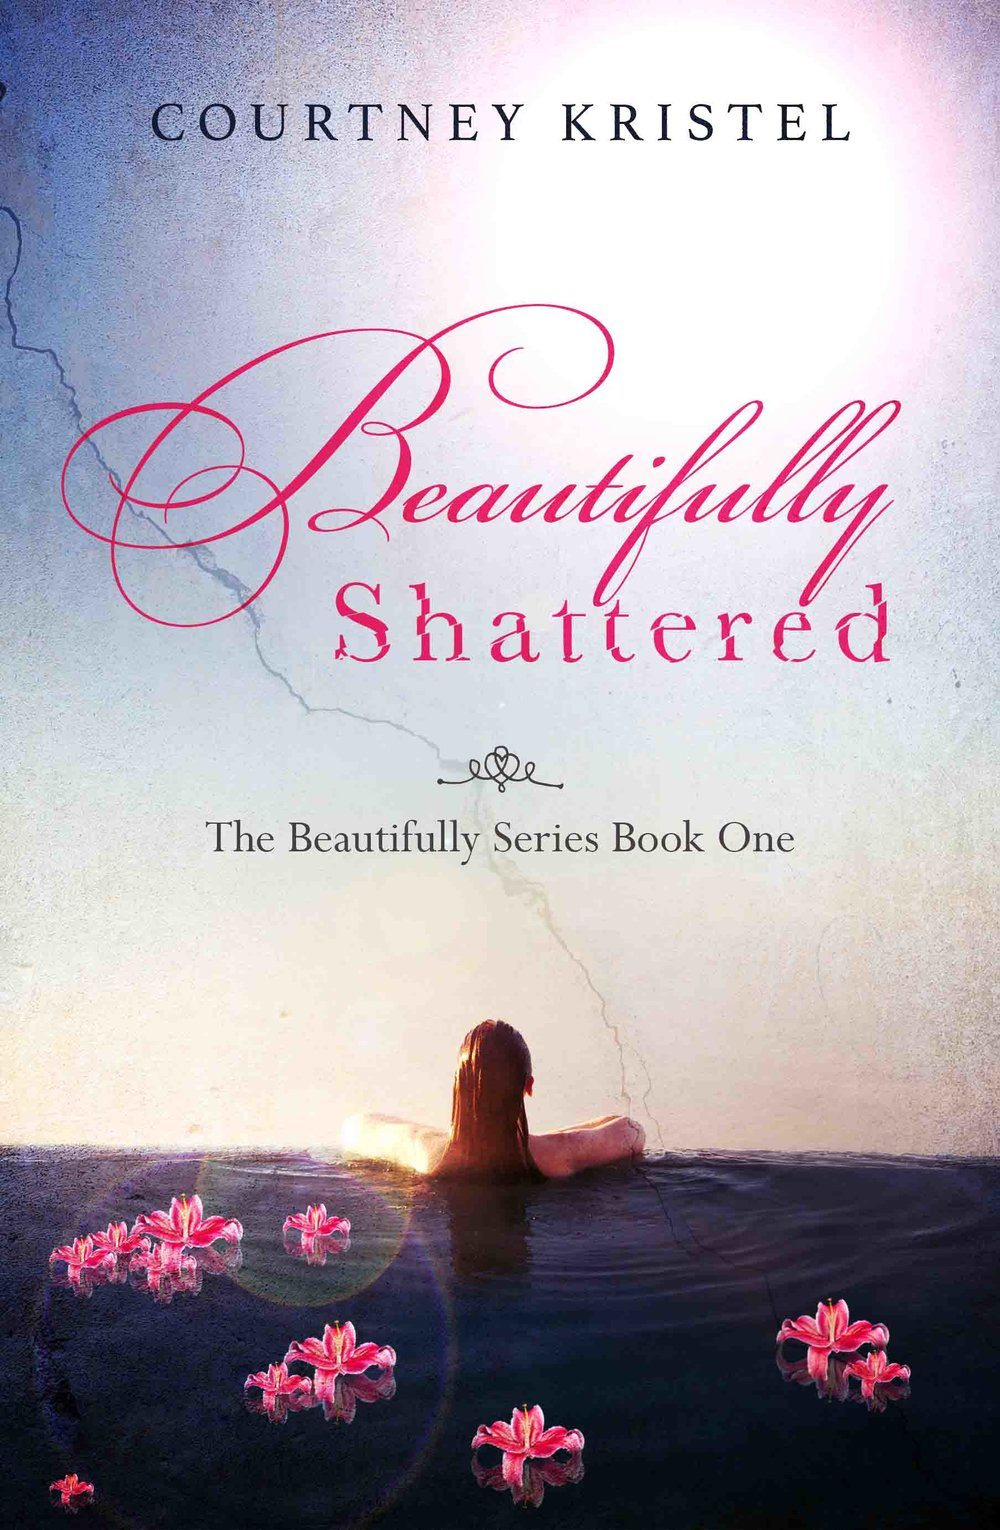 0115 Beautifully Shattered_v11.jpg